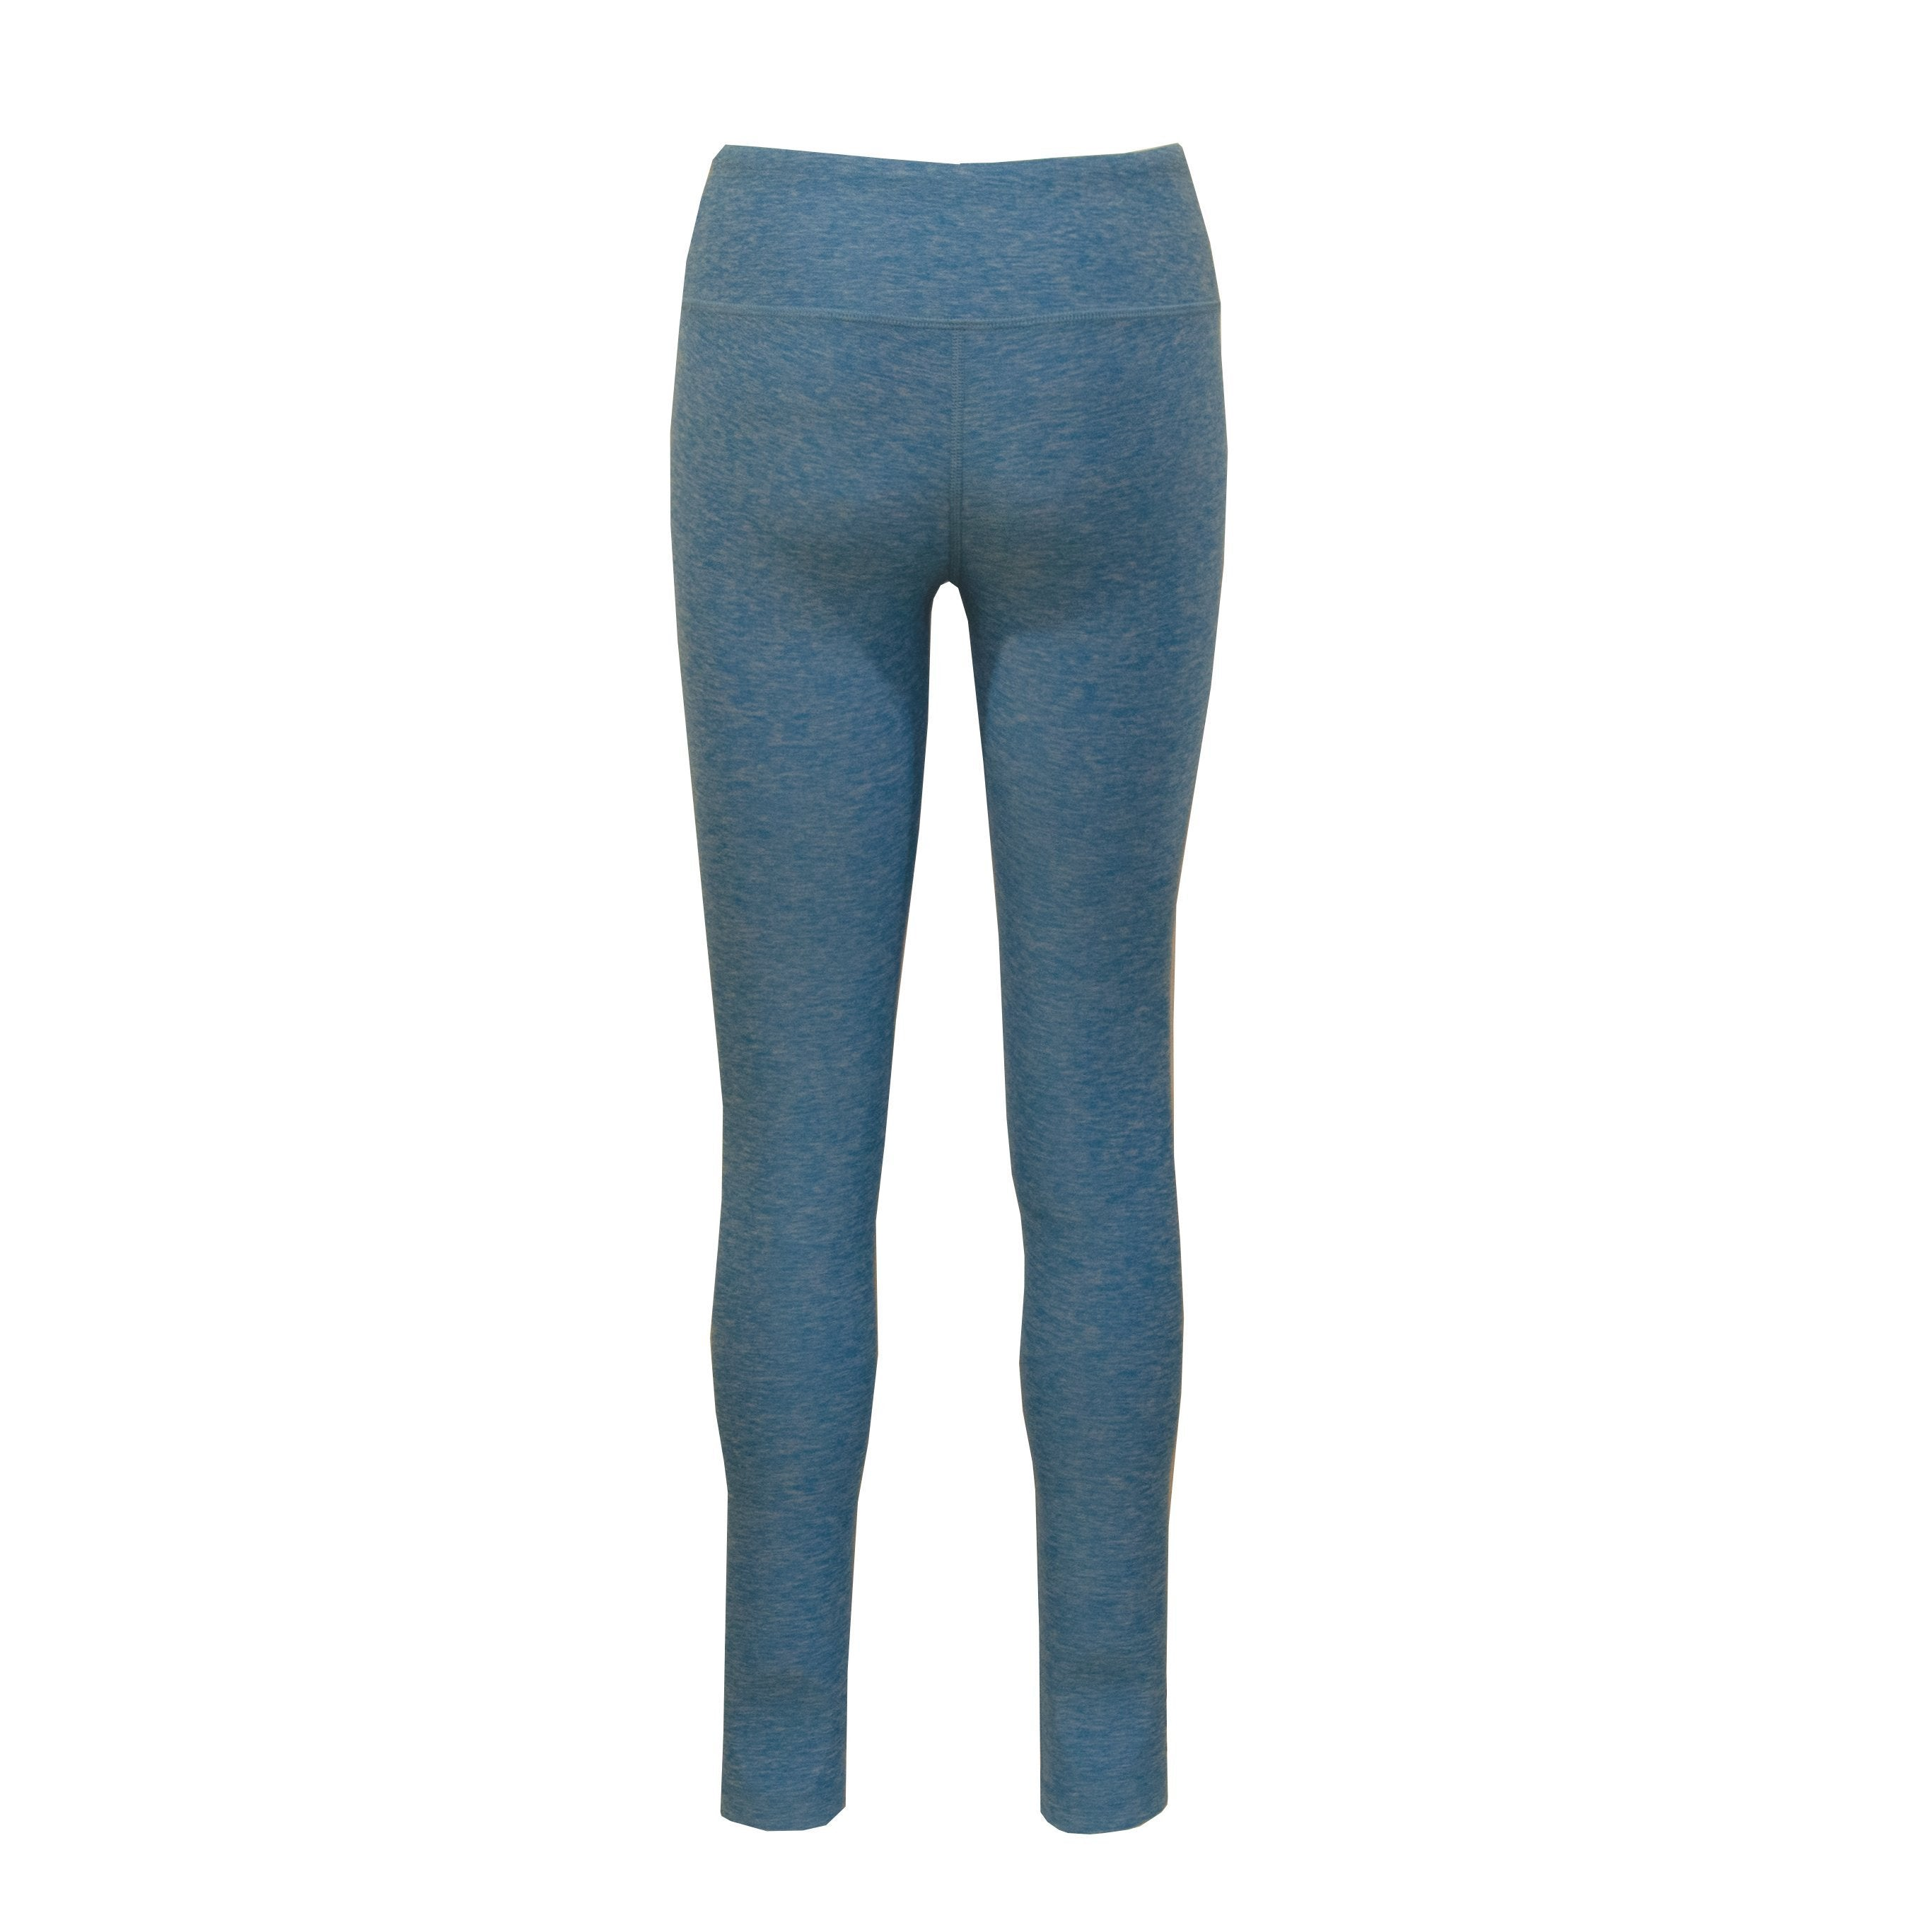 L600CO Heathered Leggings Full Length - Cobalt